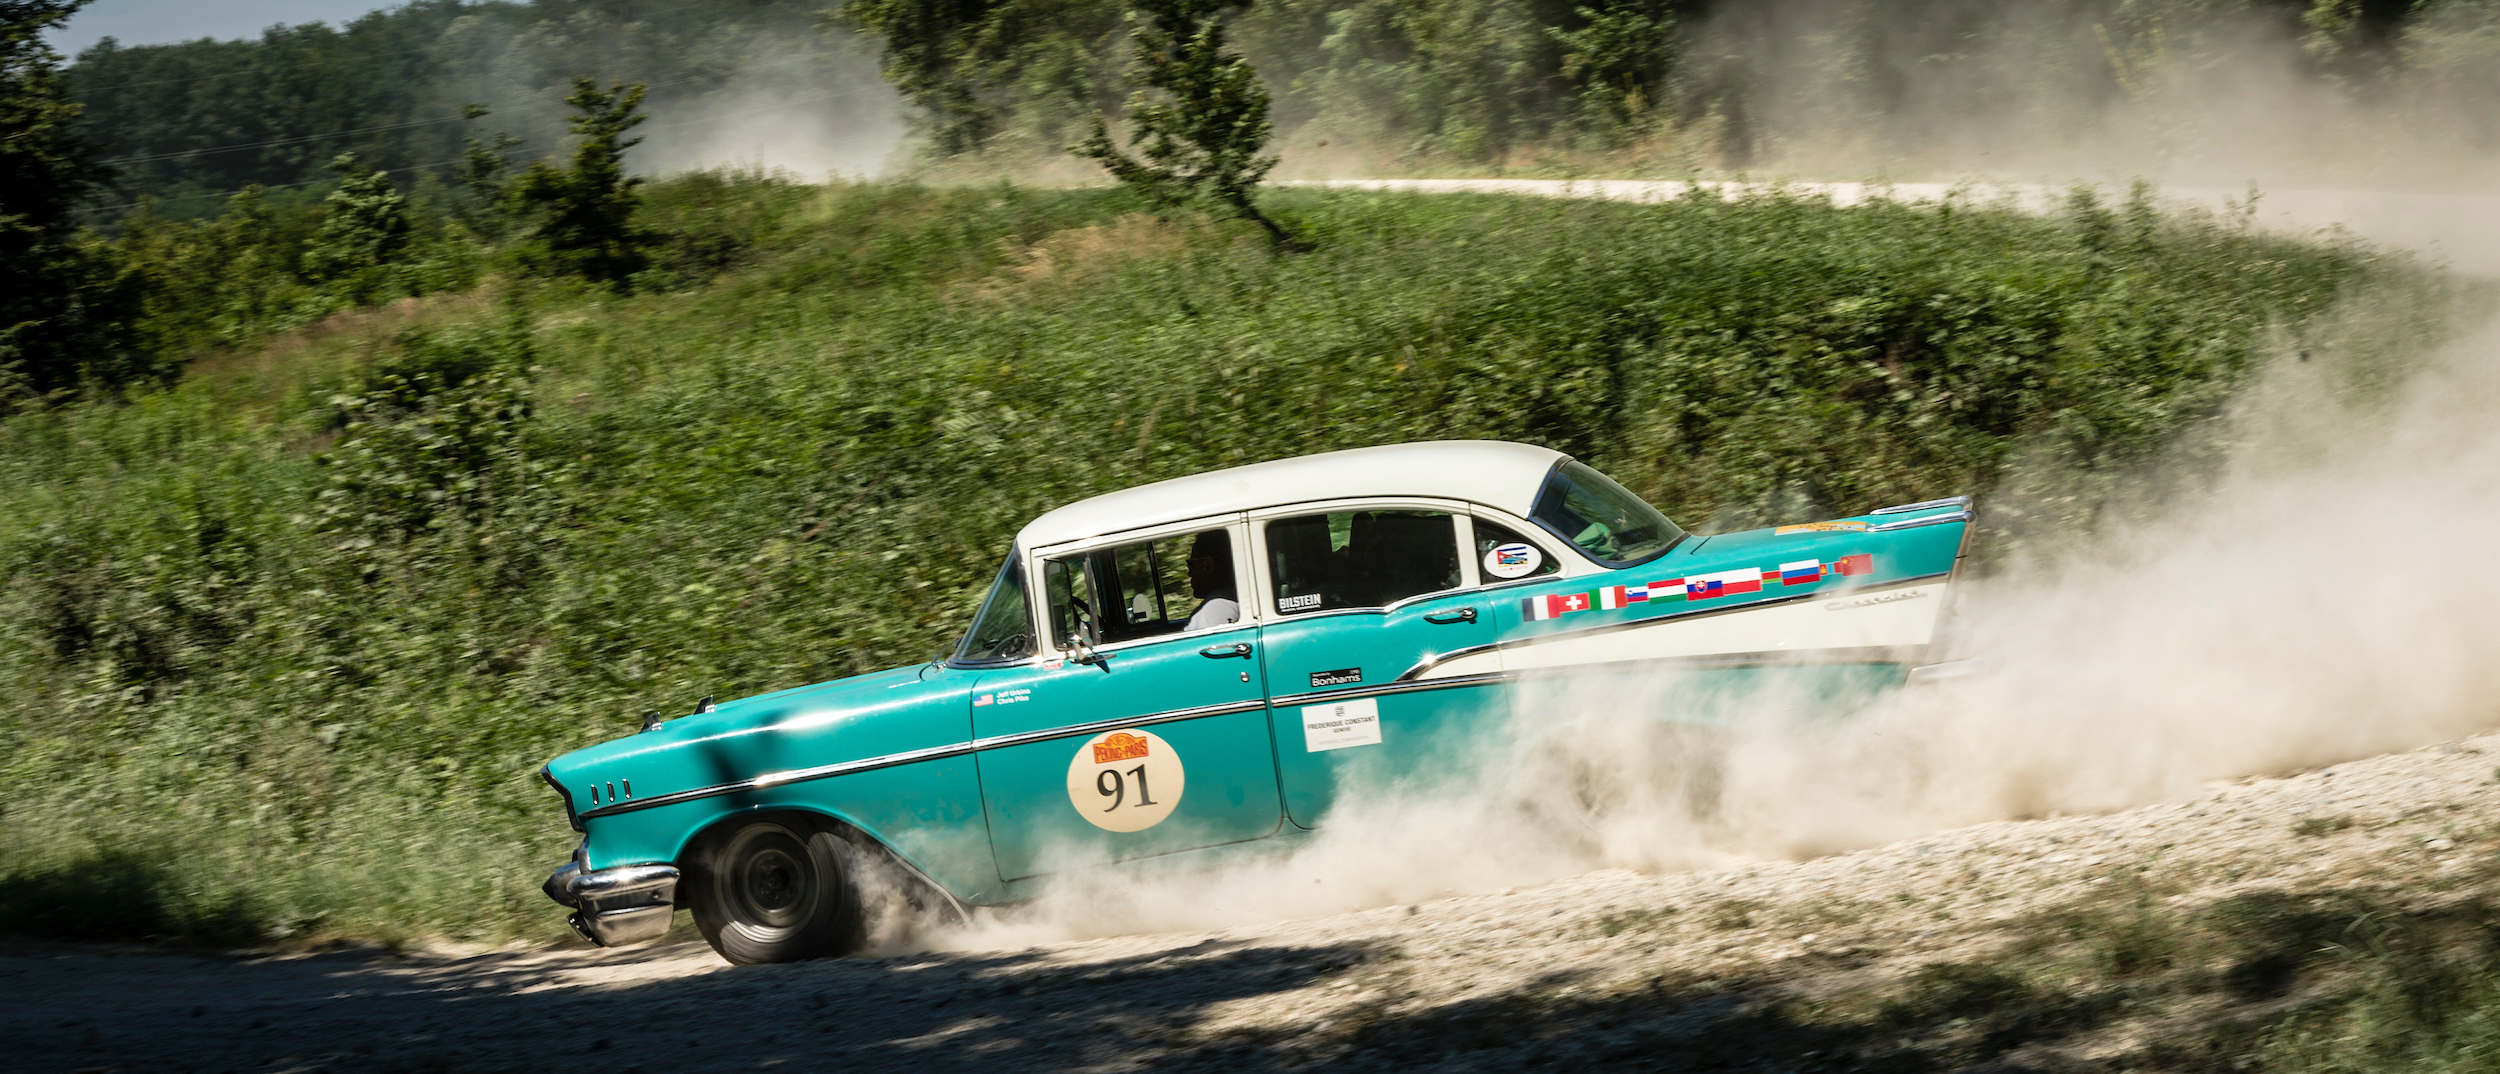 The Bel Air, Leaving Competitors in the Dust!